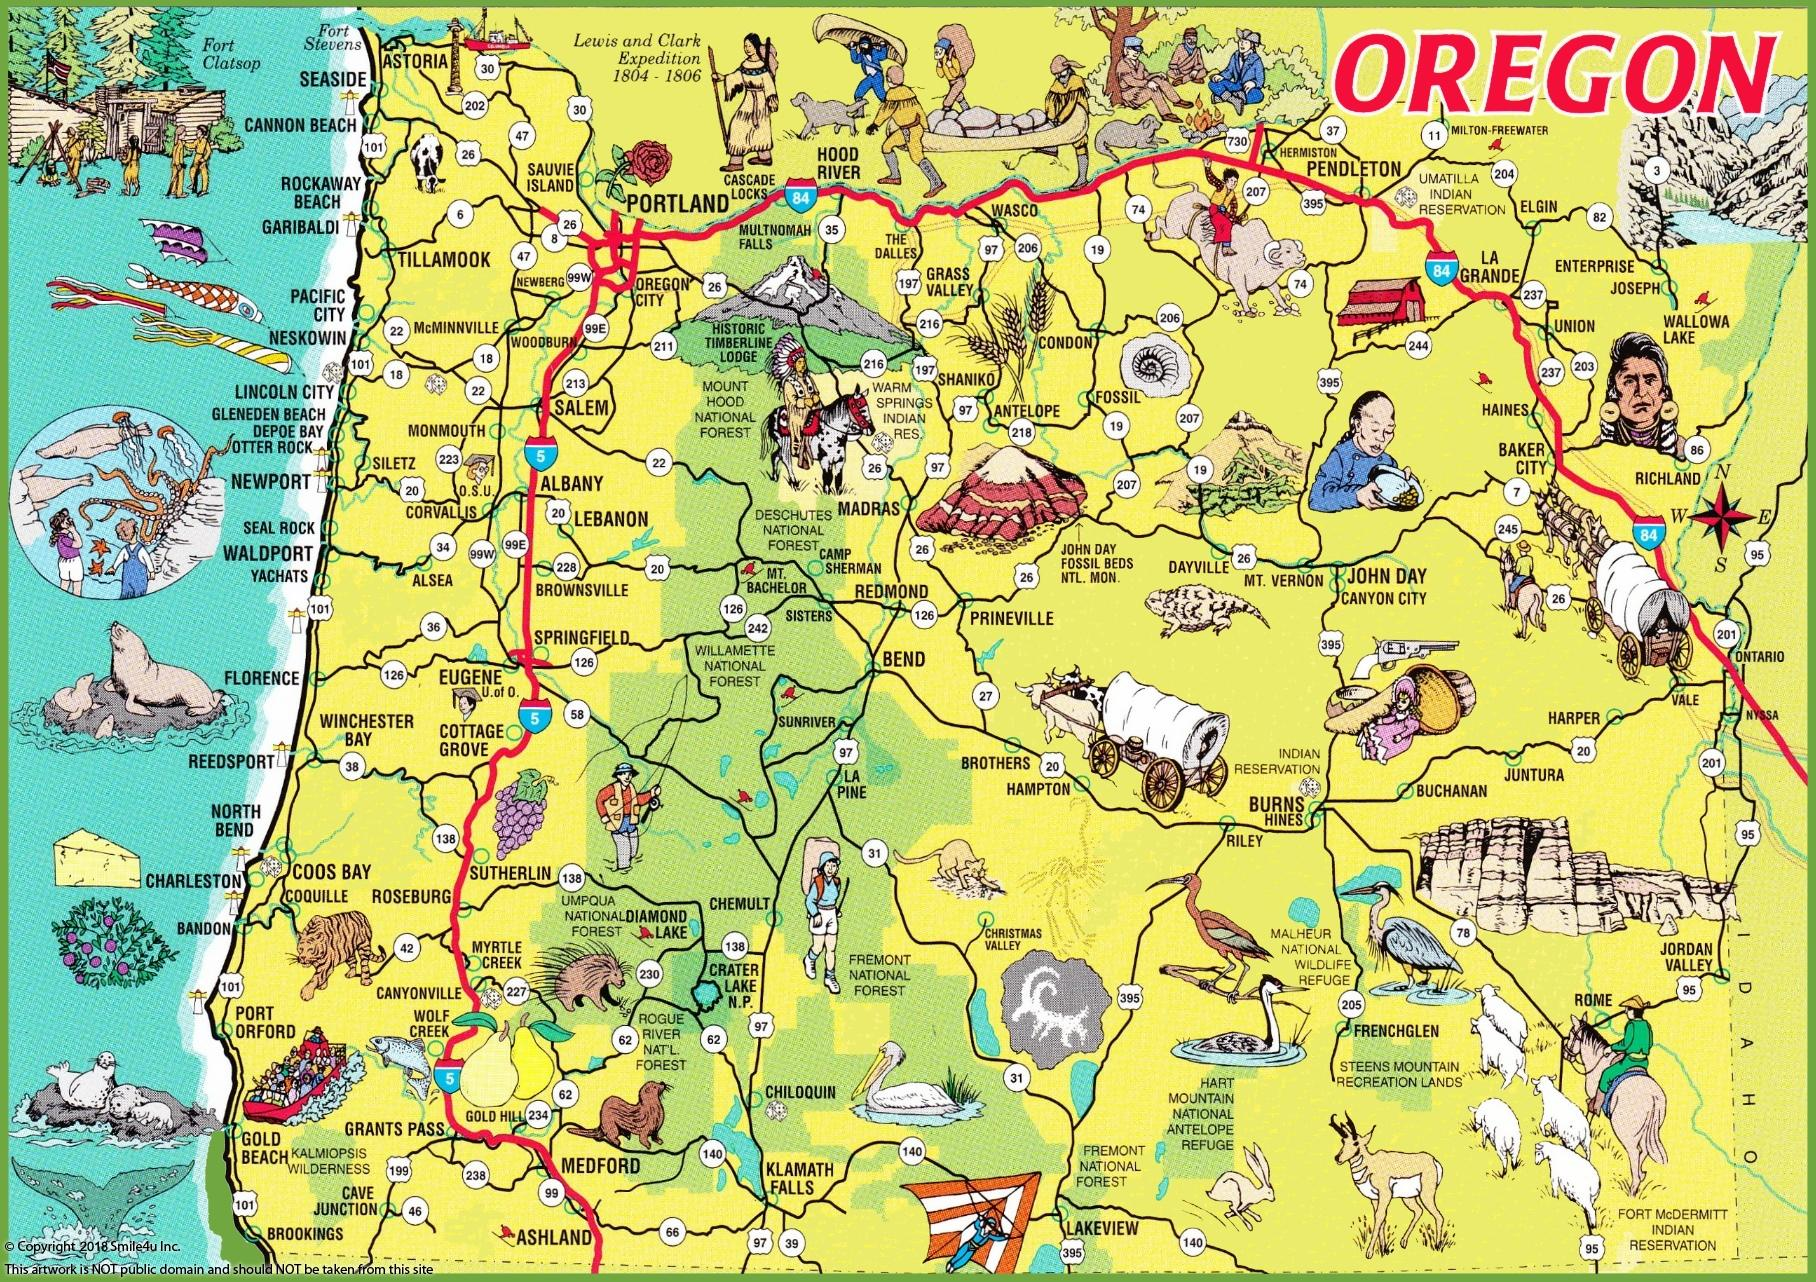 473661_watermarked_pictorial-travel-map-of-oregon.jpg